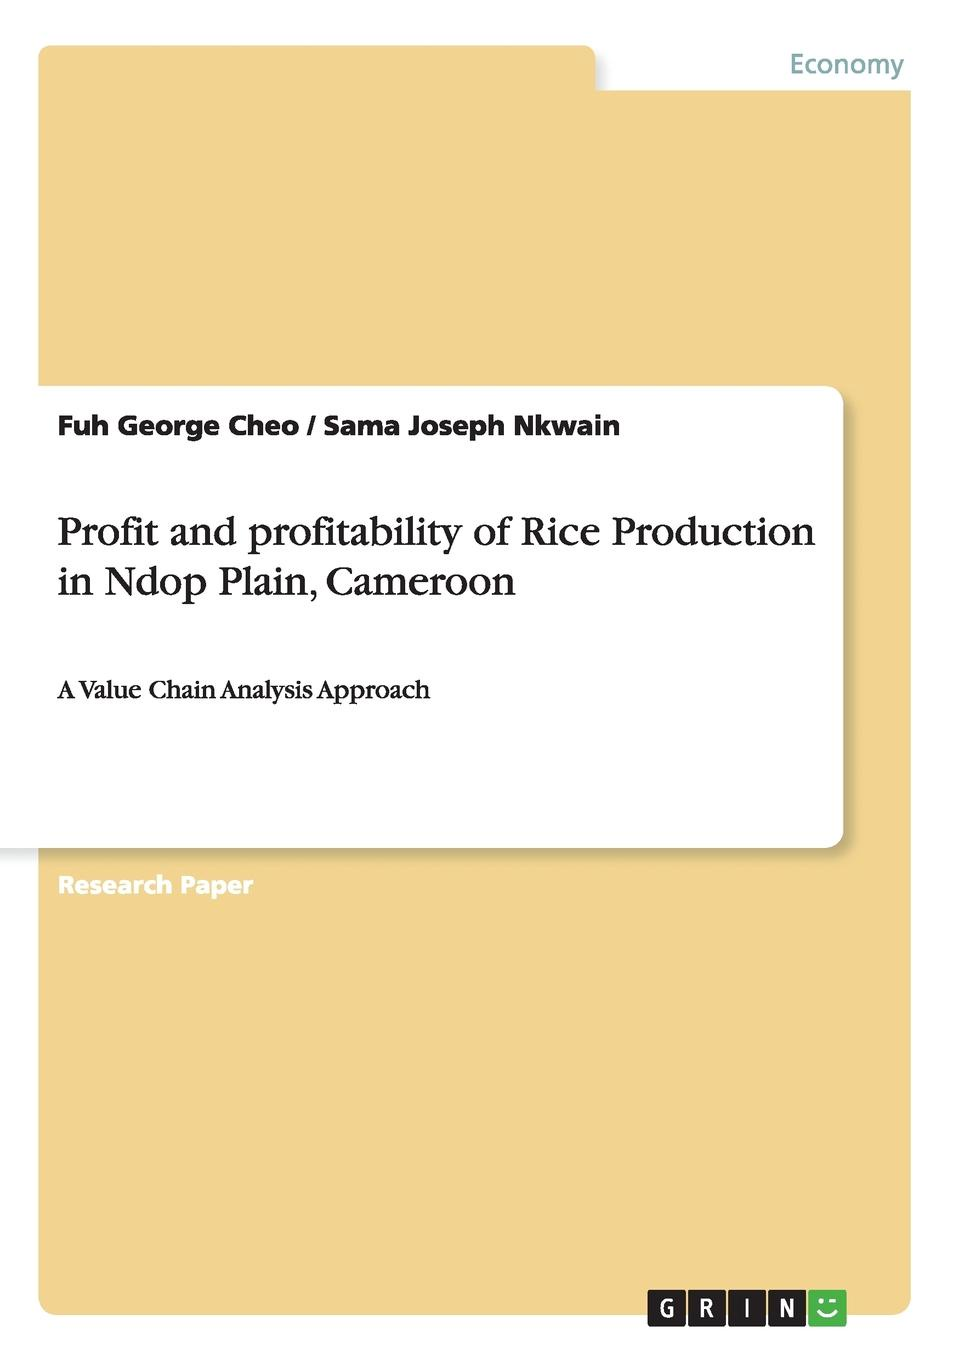 Fuh George Cheo, Sama Joseph Nkwain Profit and profitability of Rice Production in Ndop Plain, Cameroon nick earle from com to profit inventing business models that deliver value and profit